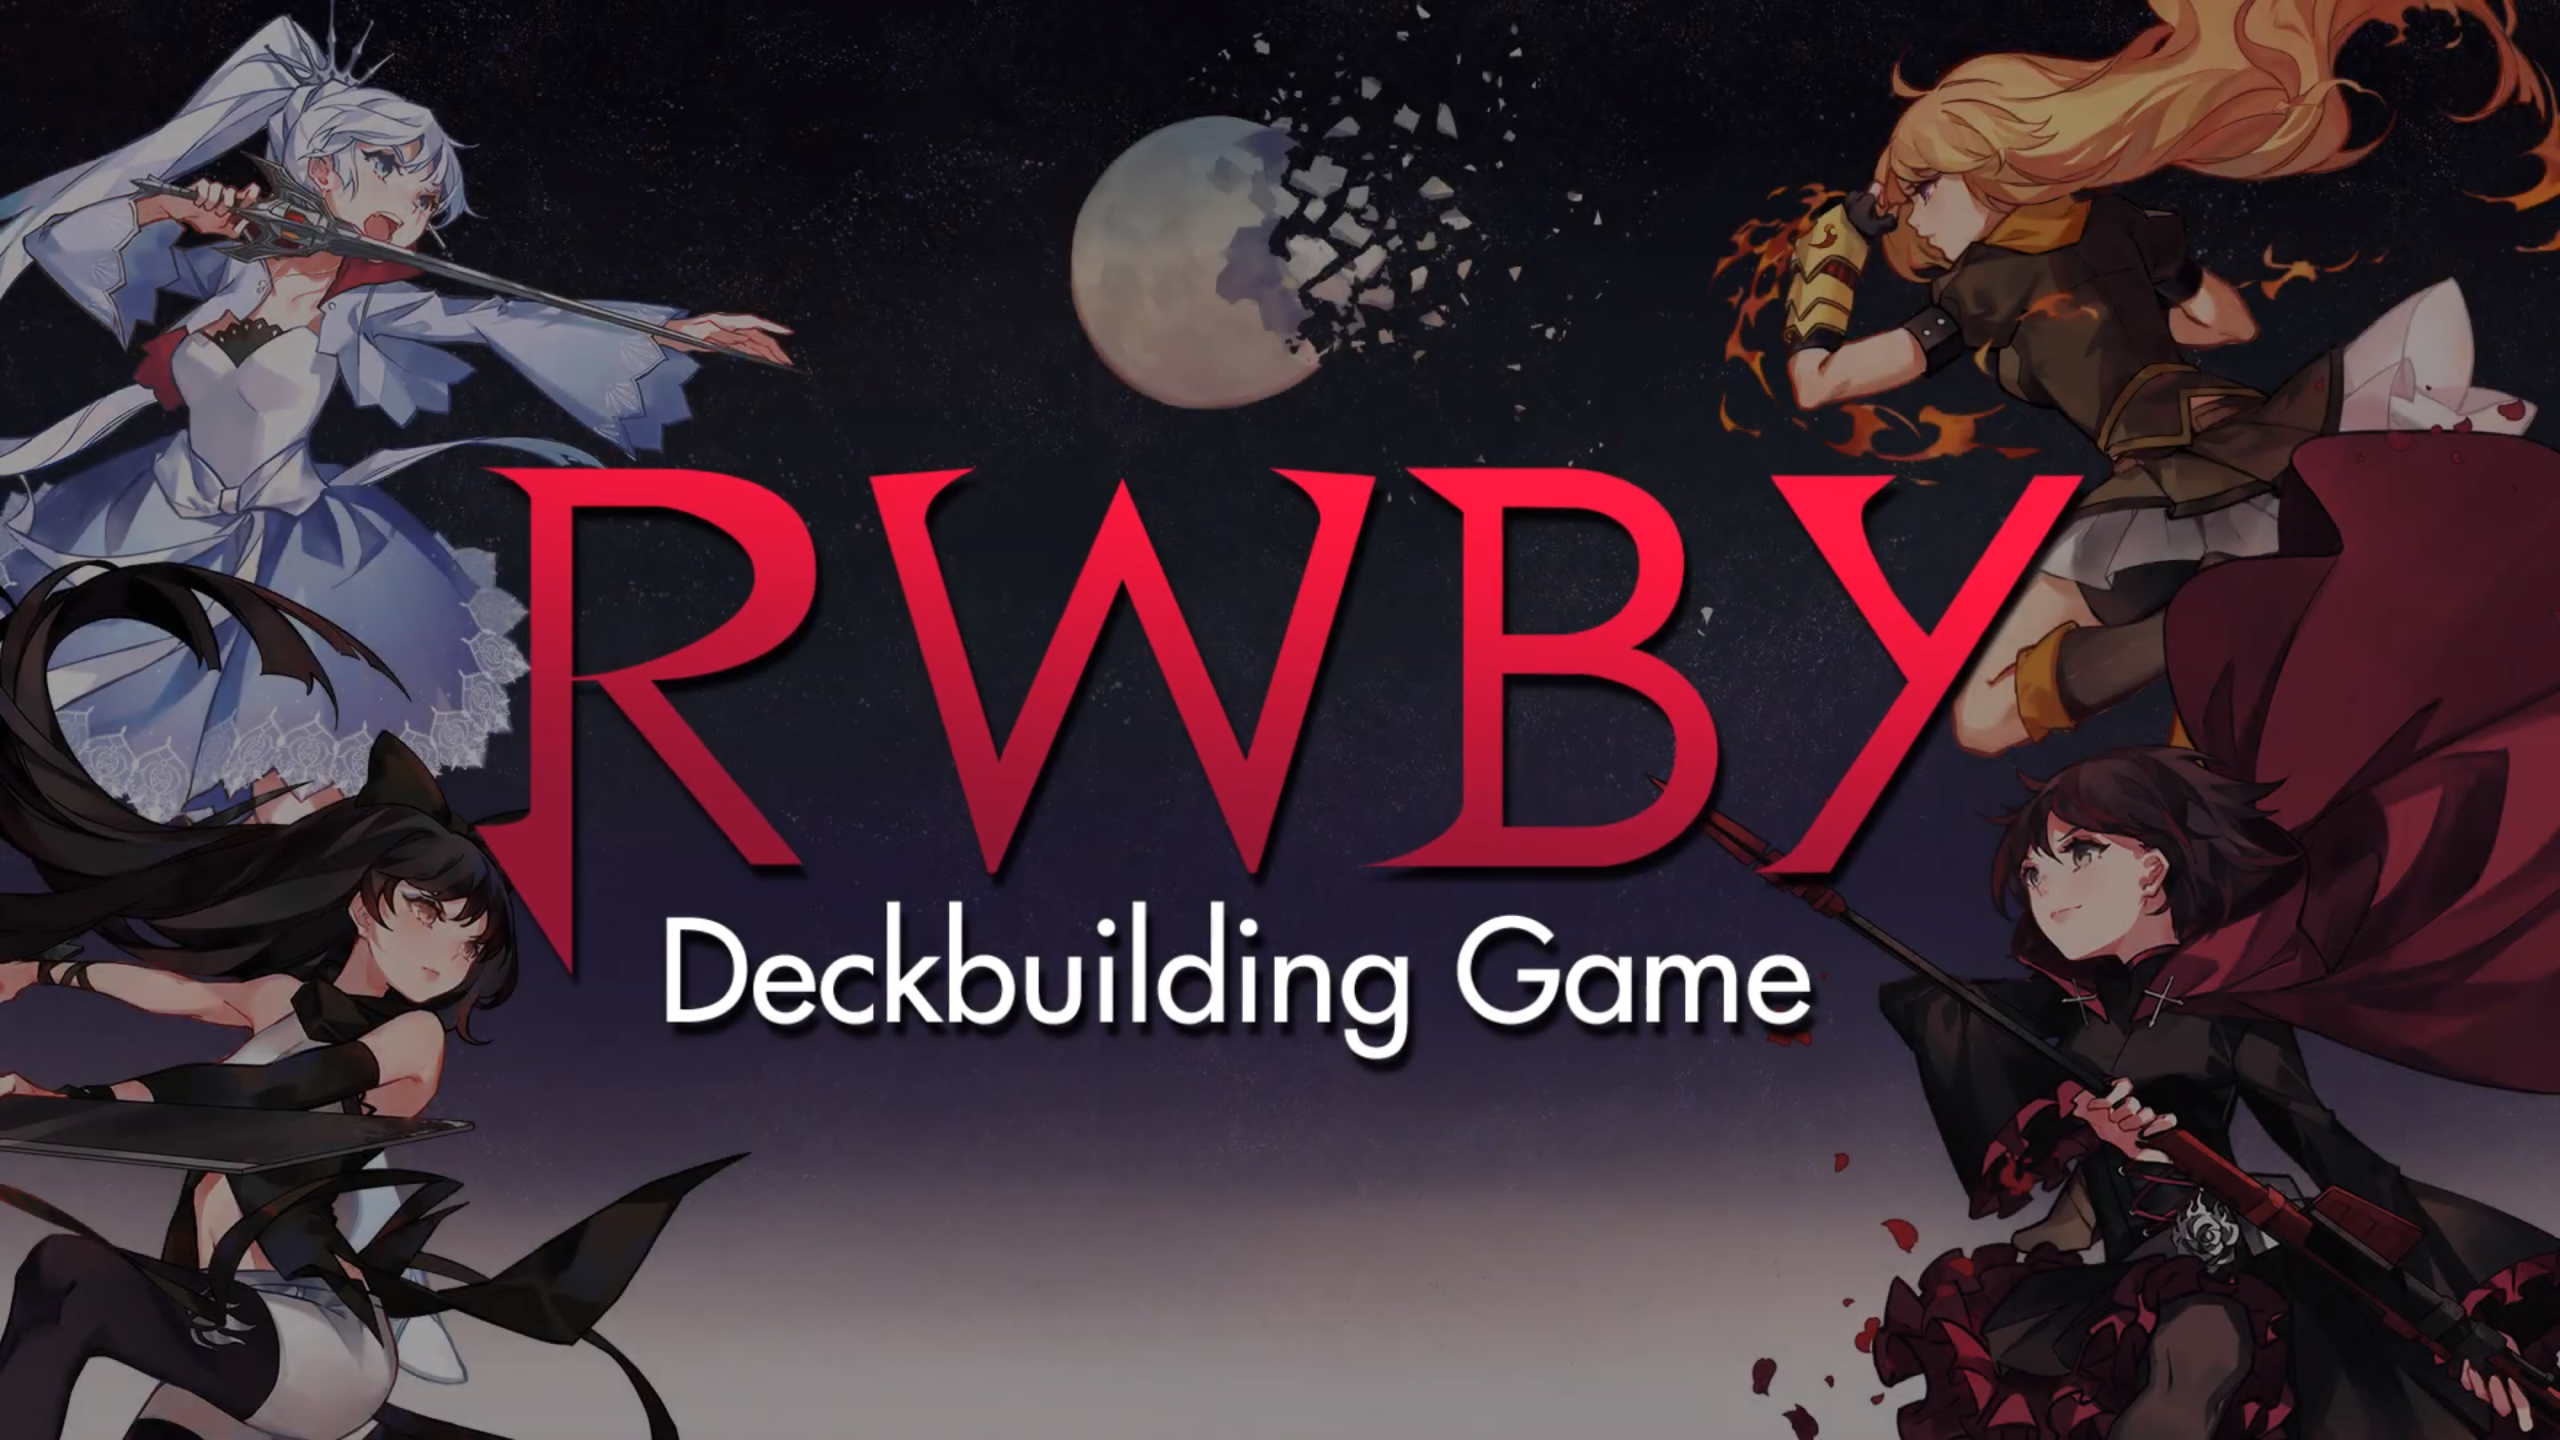 Image of: Cardcast Rooster Teeth Has Officially Launched New Freetoplay Digital Card Game On The Play Store Thats Unimaginatively Titled Rwby Deckbuilding Game Reddit Rooster Teeths Rwby Deckbuilding Game Is Out On Android